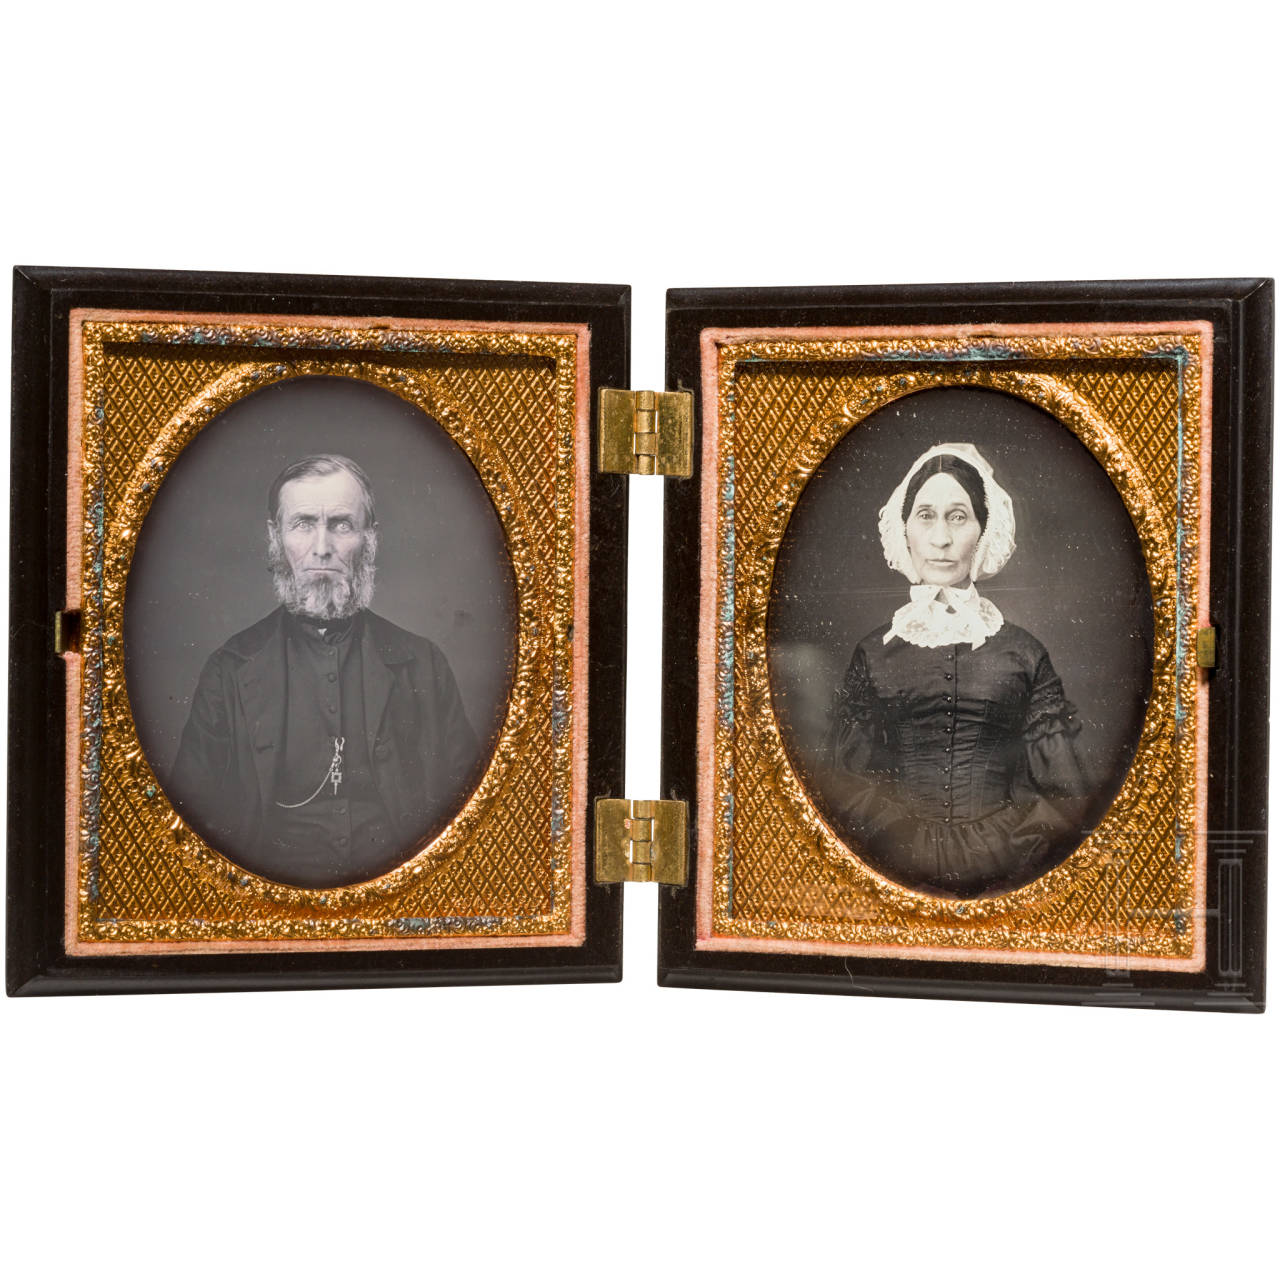 A pair of daguerreotypes, England or USA, ca. 1850/60